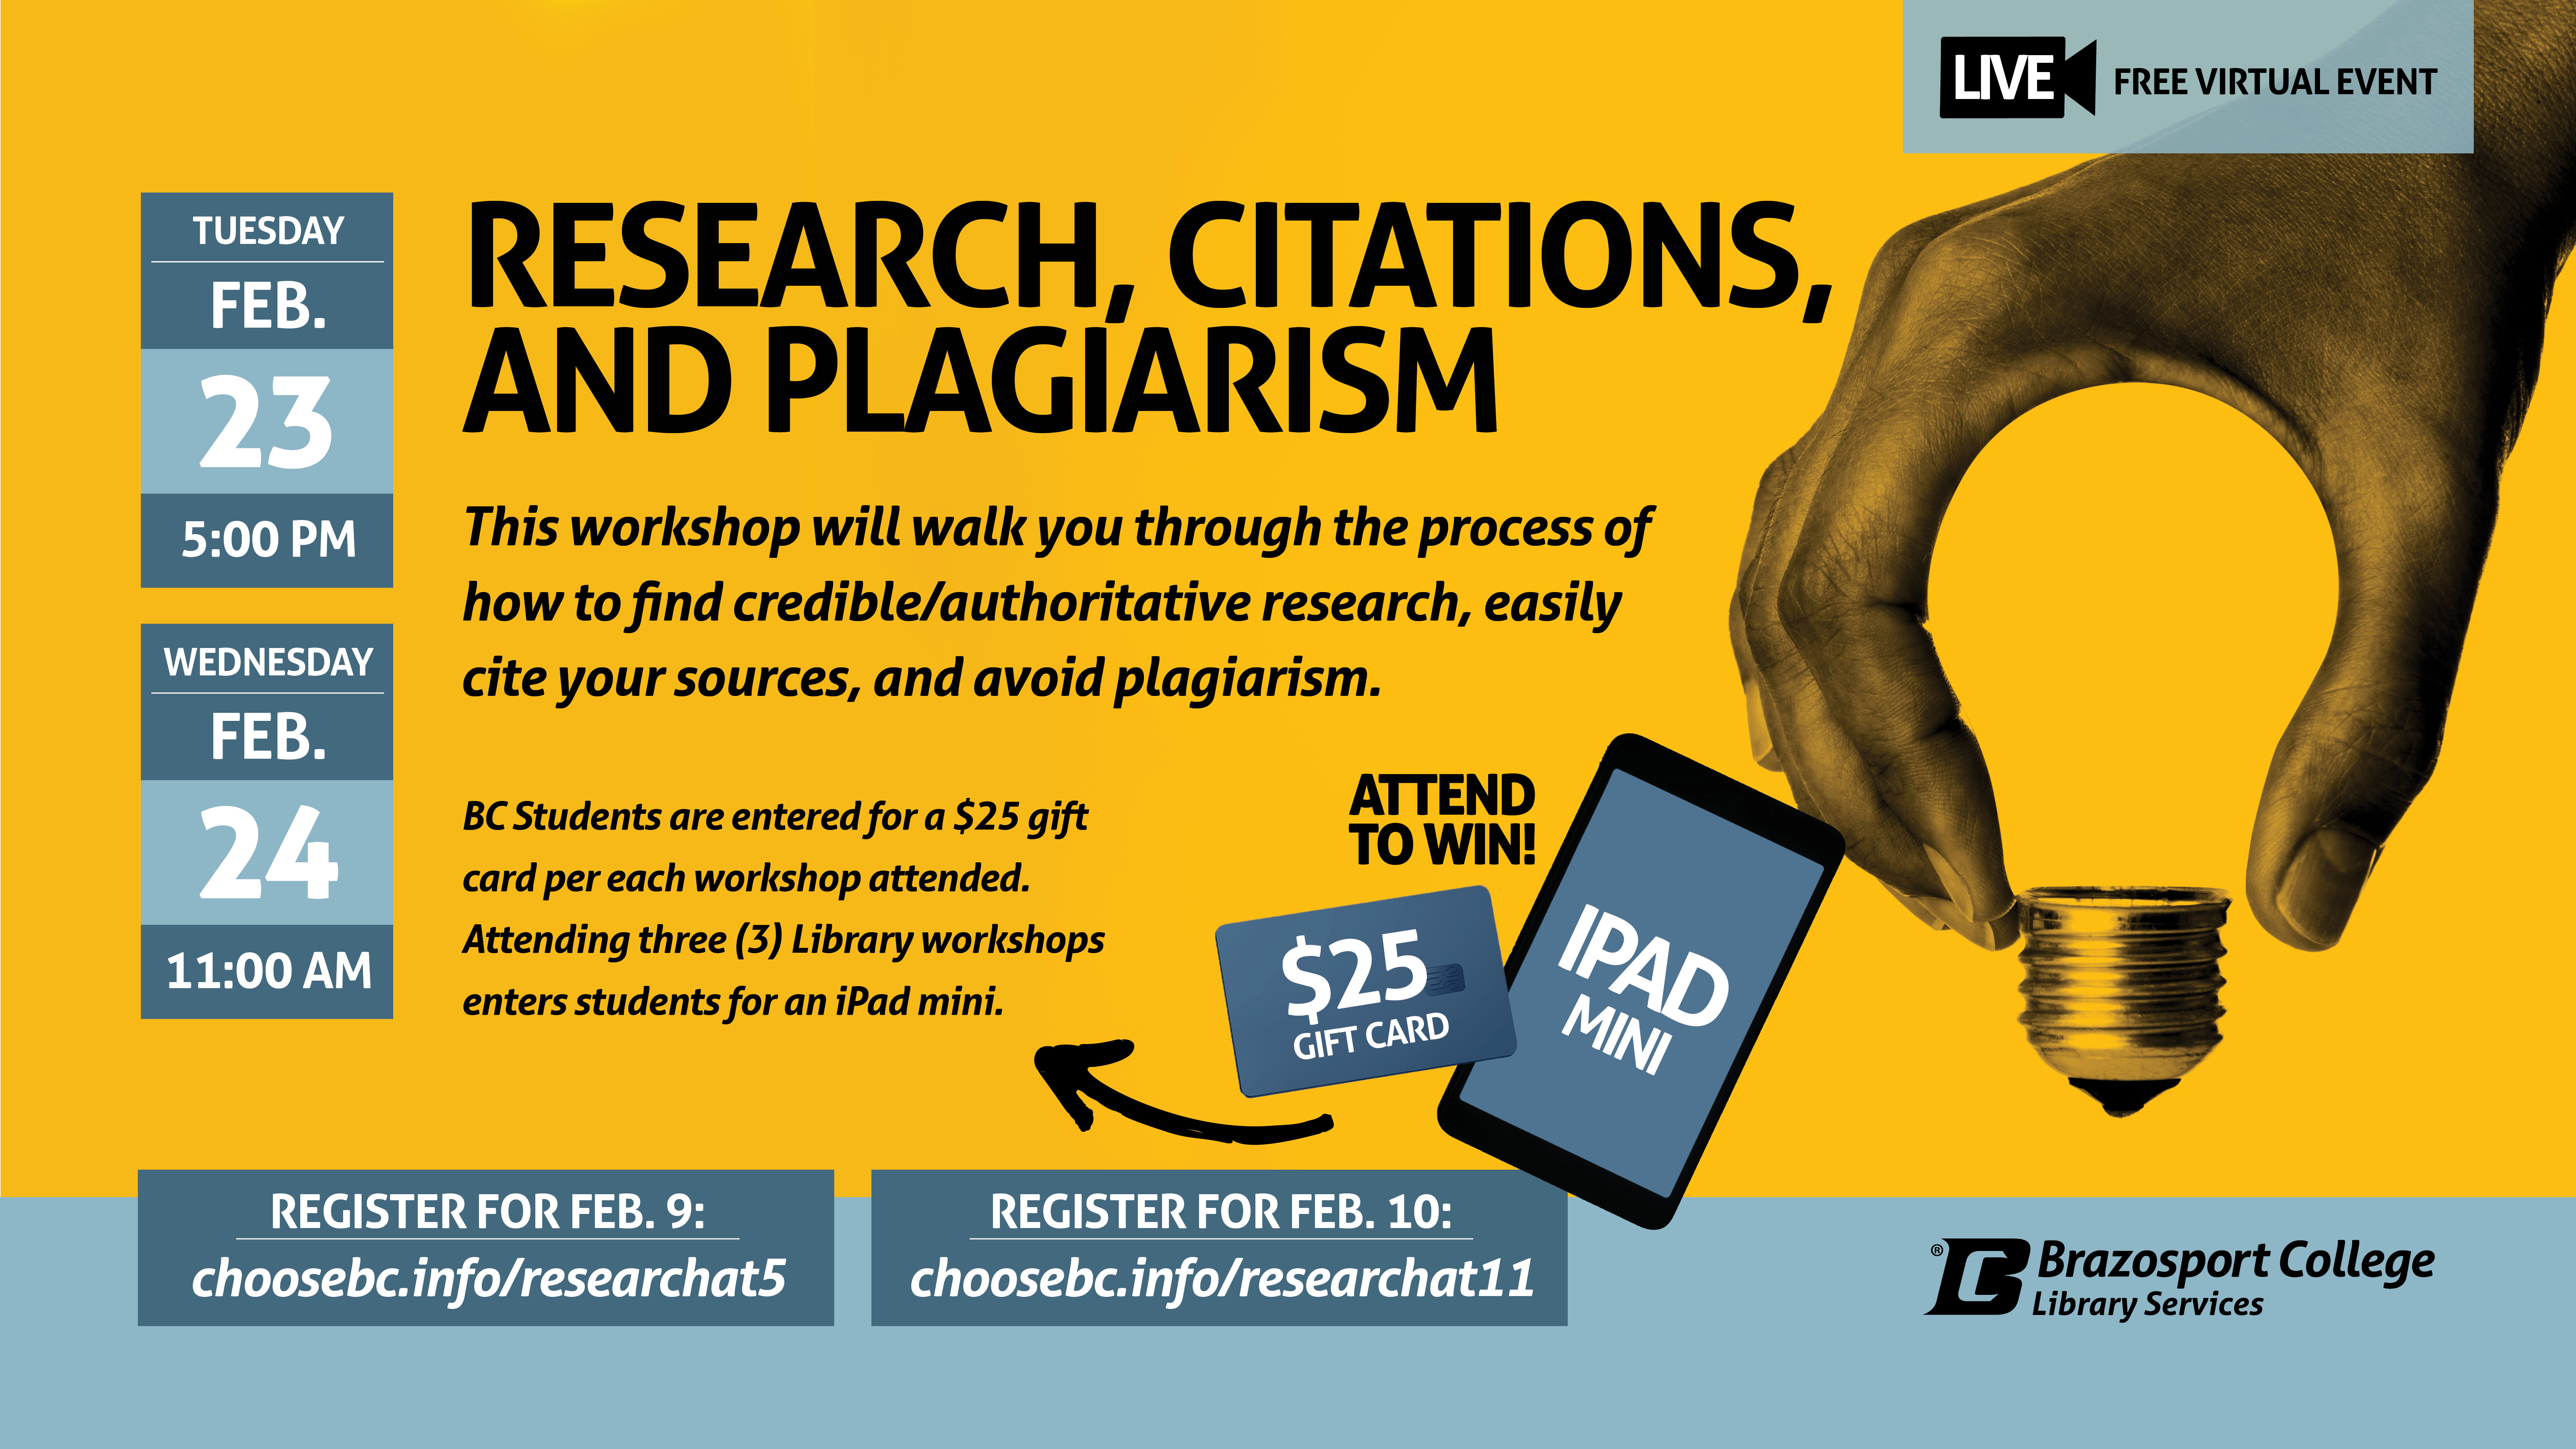 Research, Citations and Plagiarism